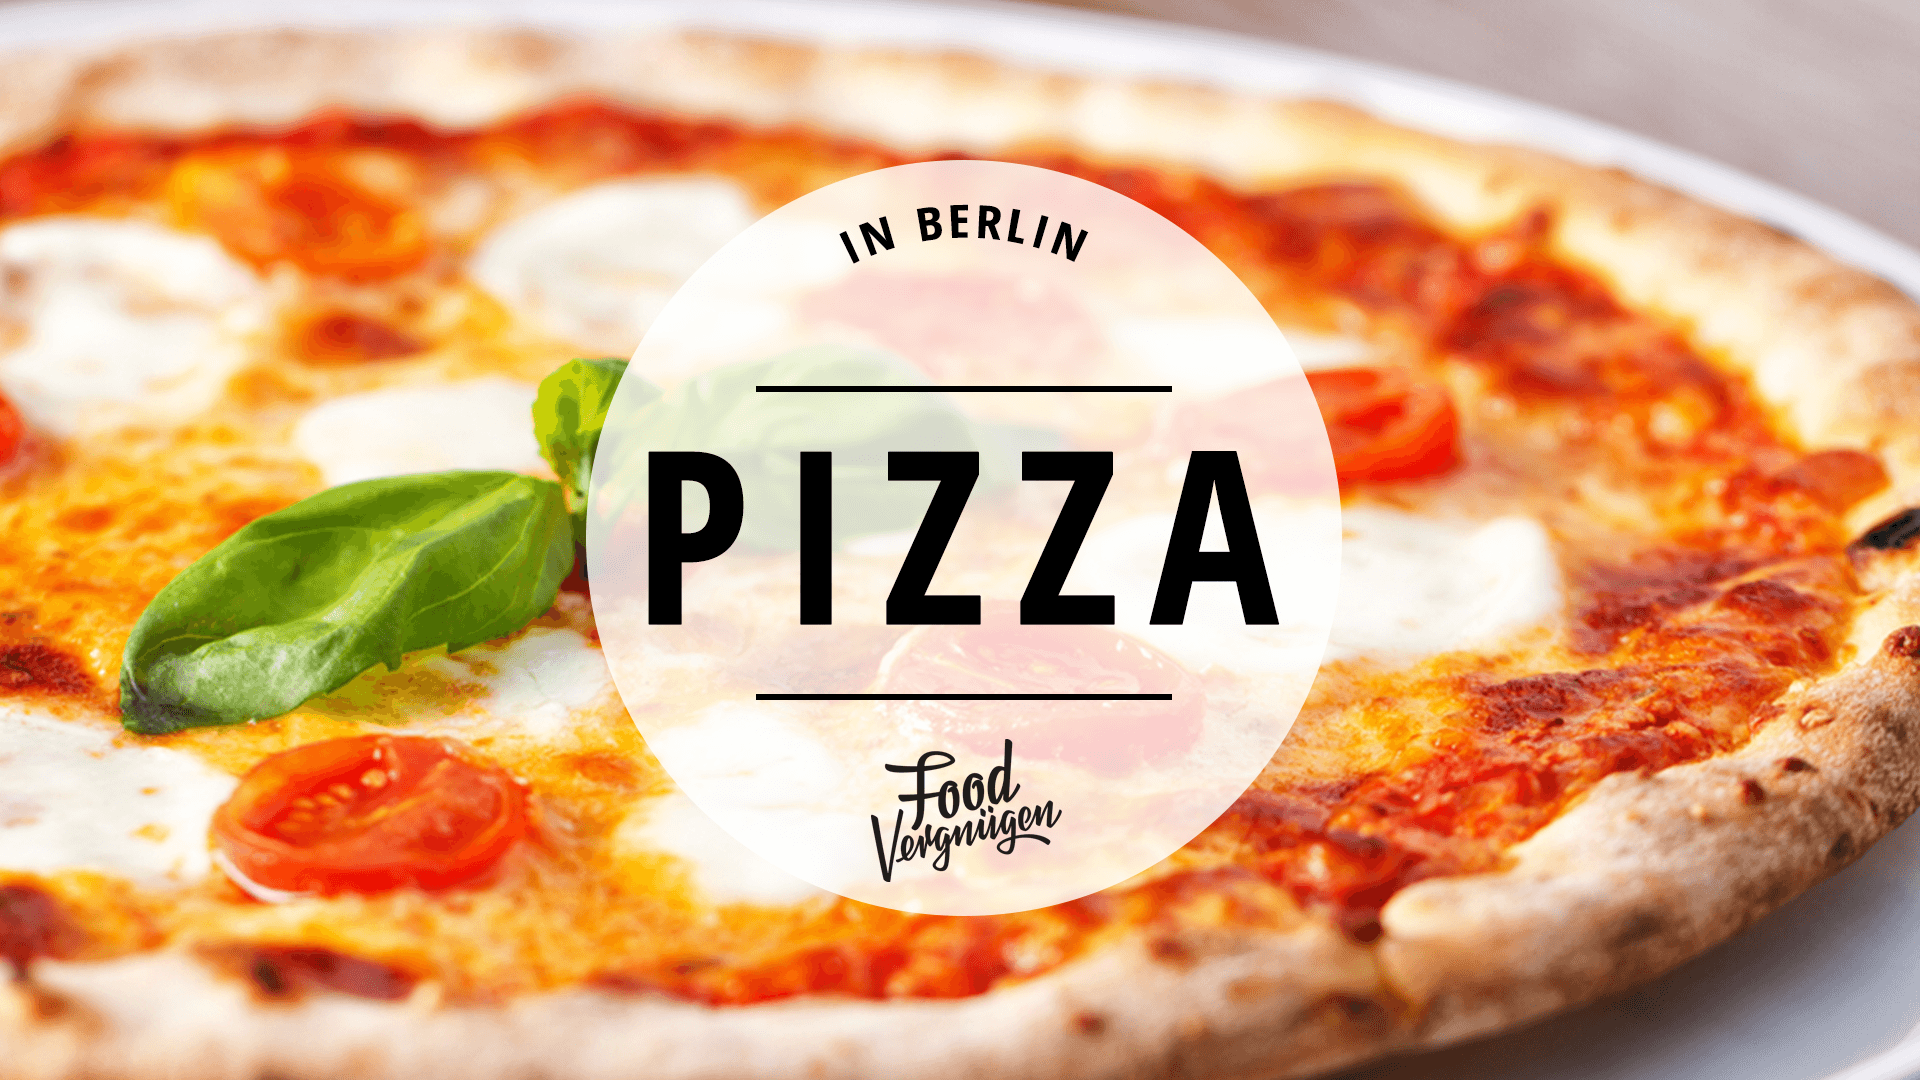 11 berliner restaurants in denen ihr richtig gute pizza bekommt mit vergn gen berlin. Black Bedroom Furniture Sets. Home Design Ideas